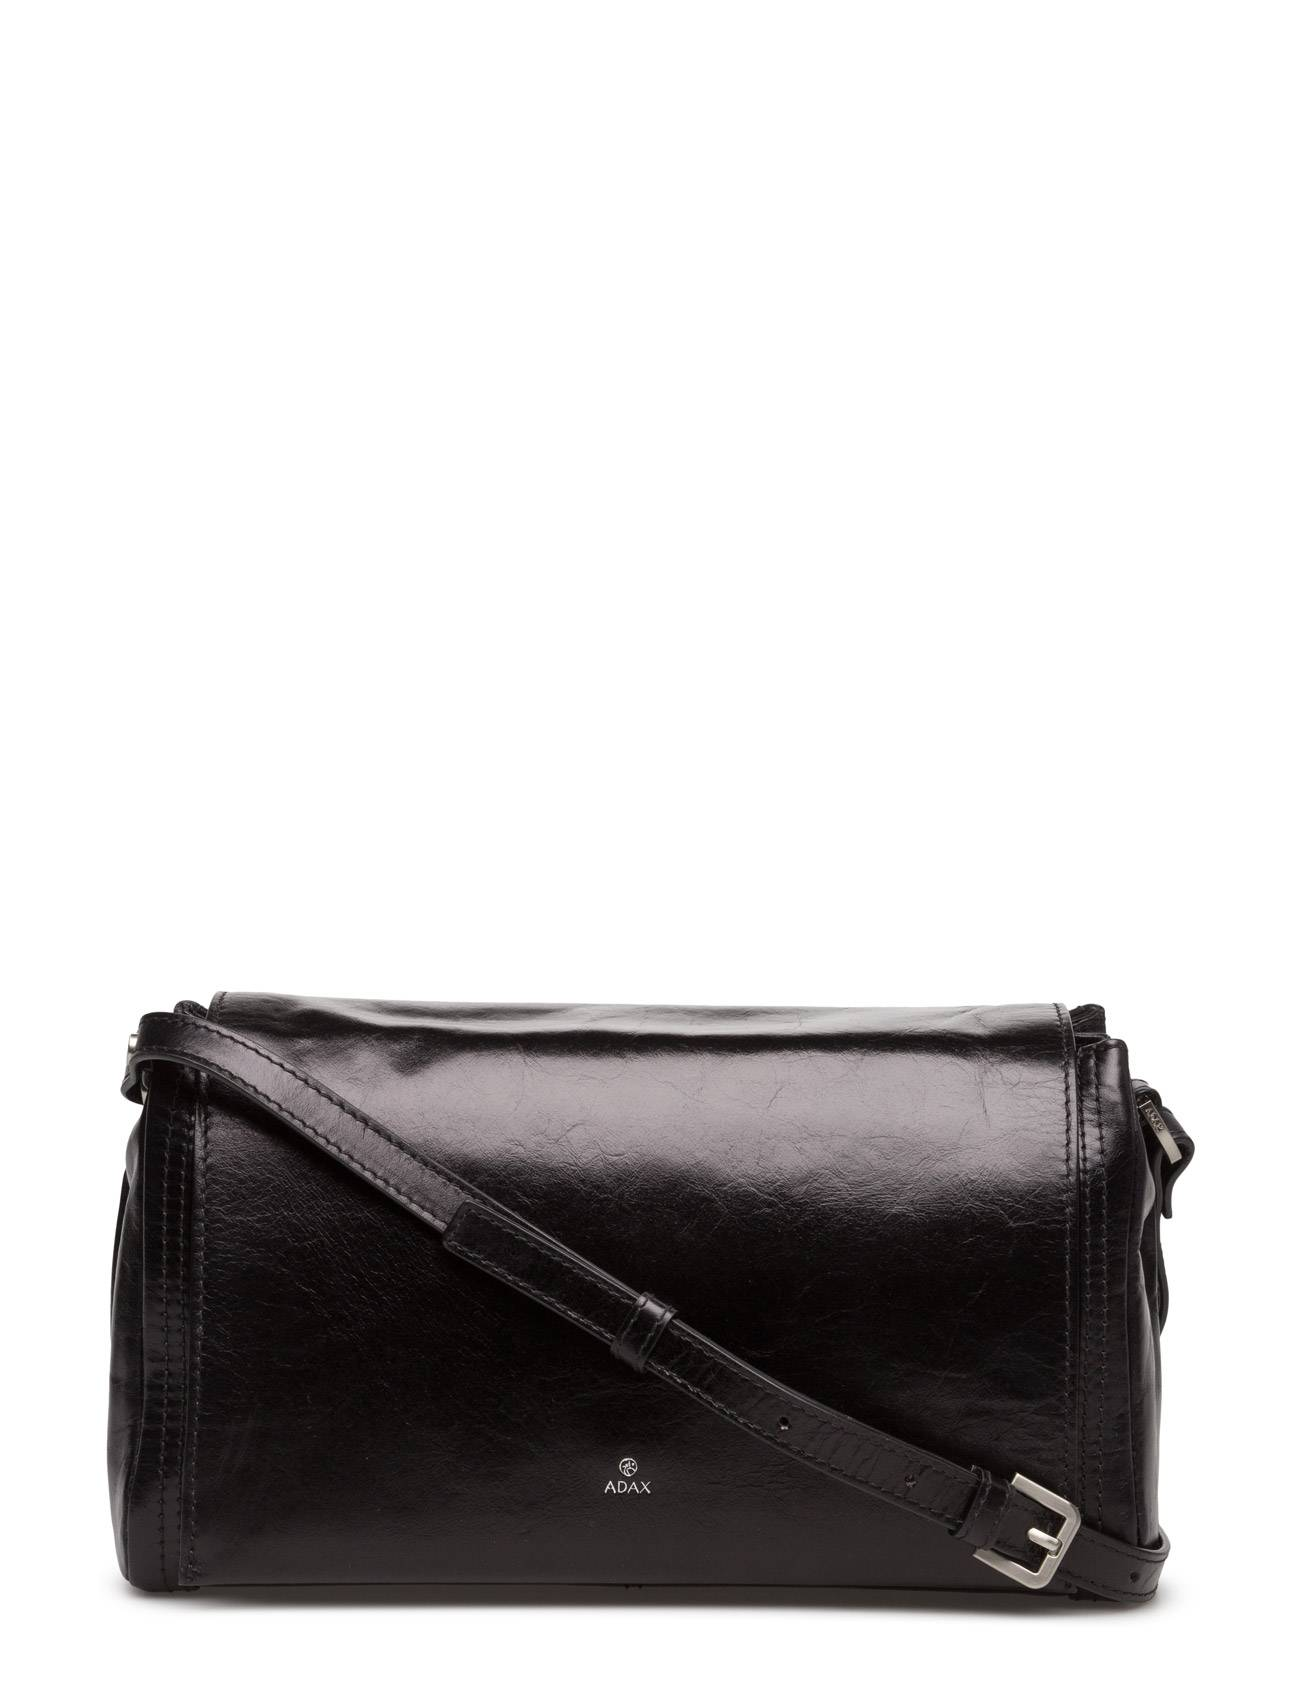 Adax Salerno Shoulder Bag Eva